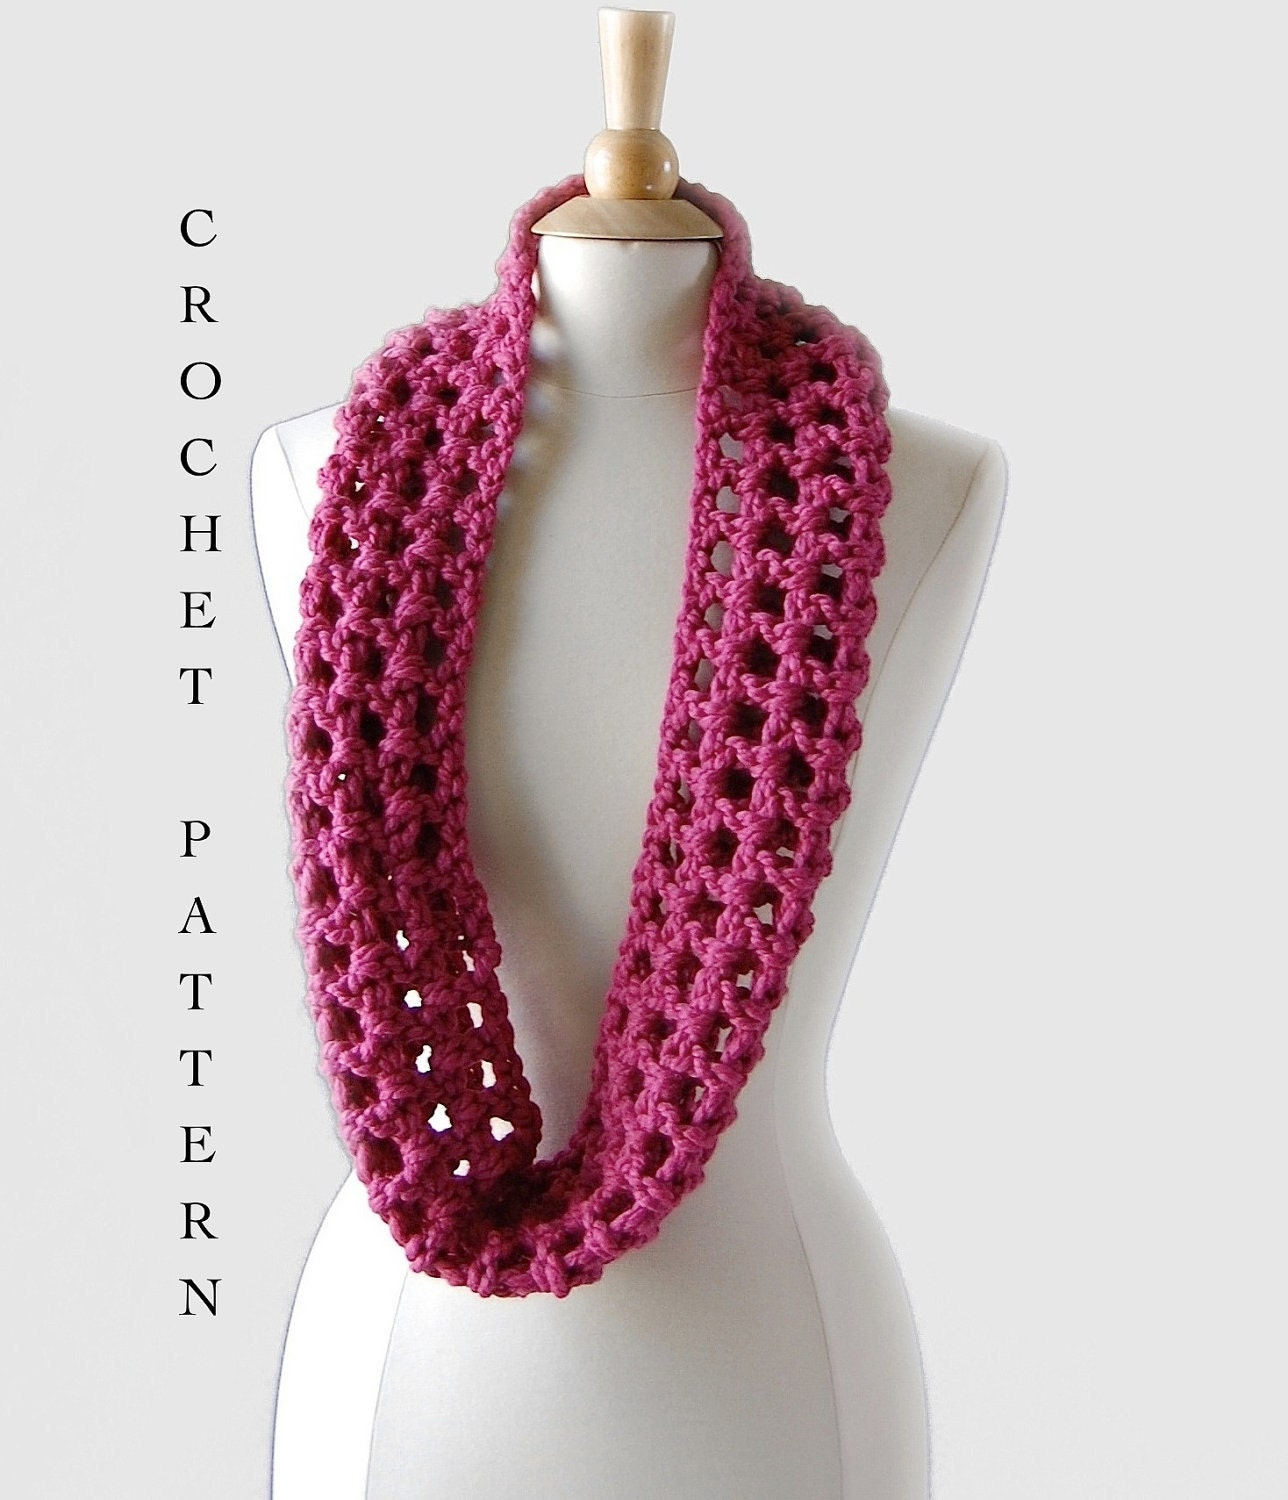 Crochet Scarf Pattern Easy Quick : Easy Crochet Infinity Scarf Pattern Crochet by ...